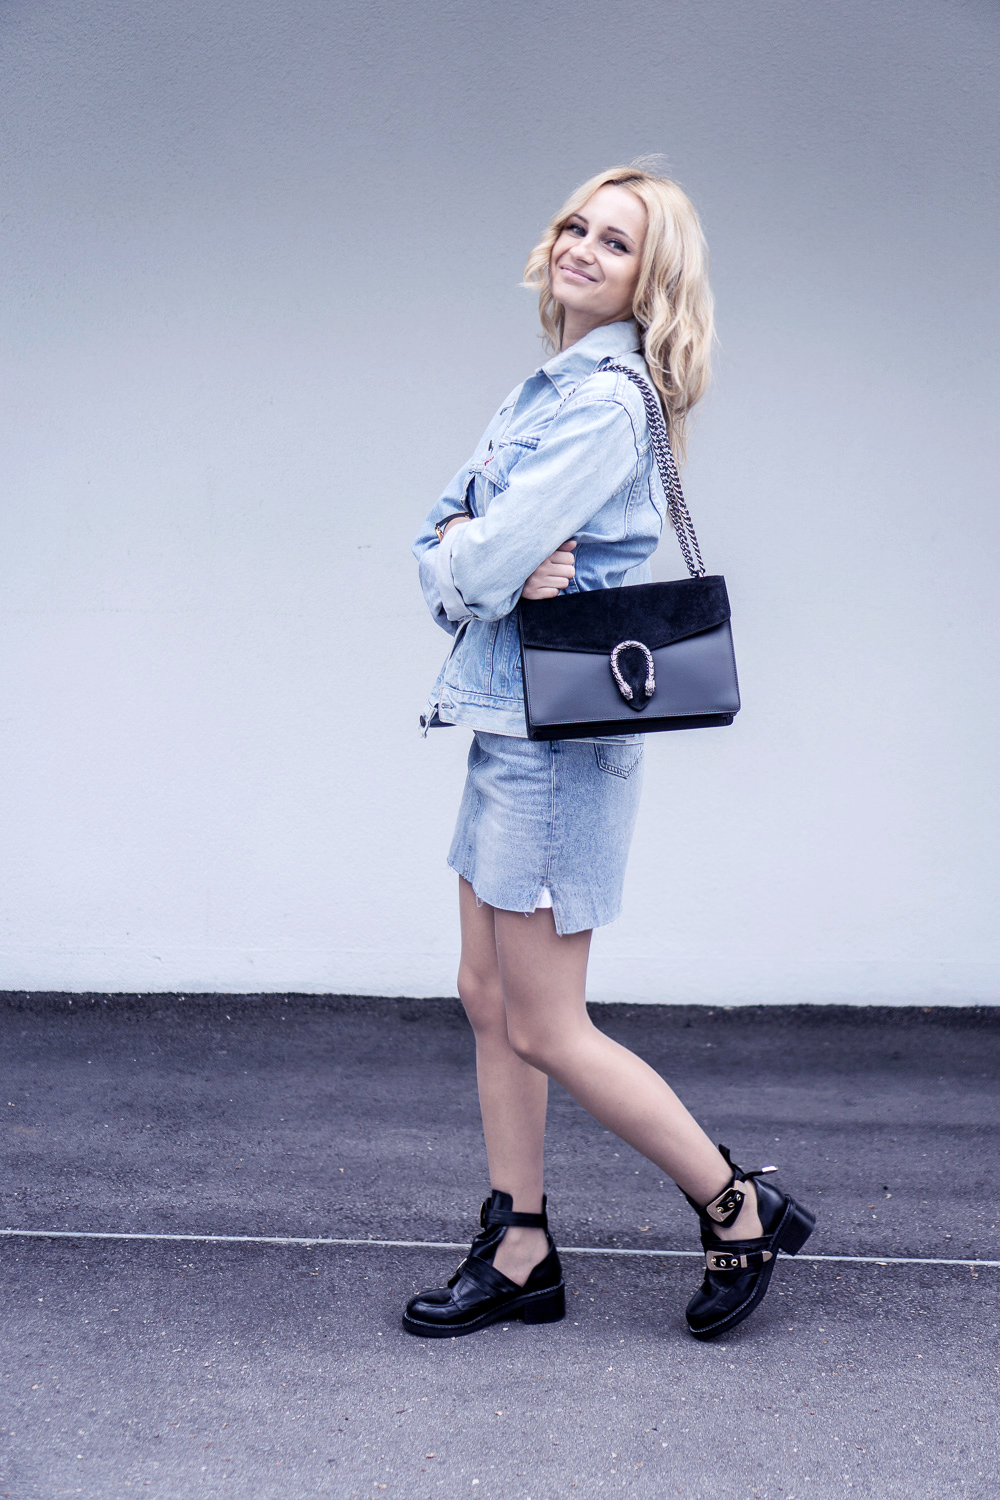 denim outfit skirt levis vintage jacket balenciaga shoes casual ootd street style fashion tumblr casual girl